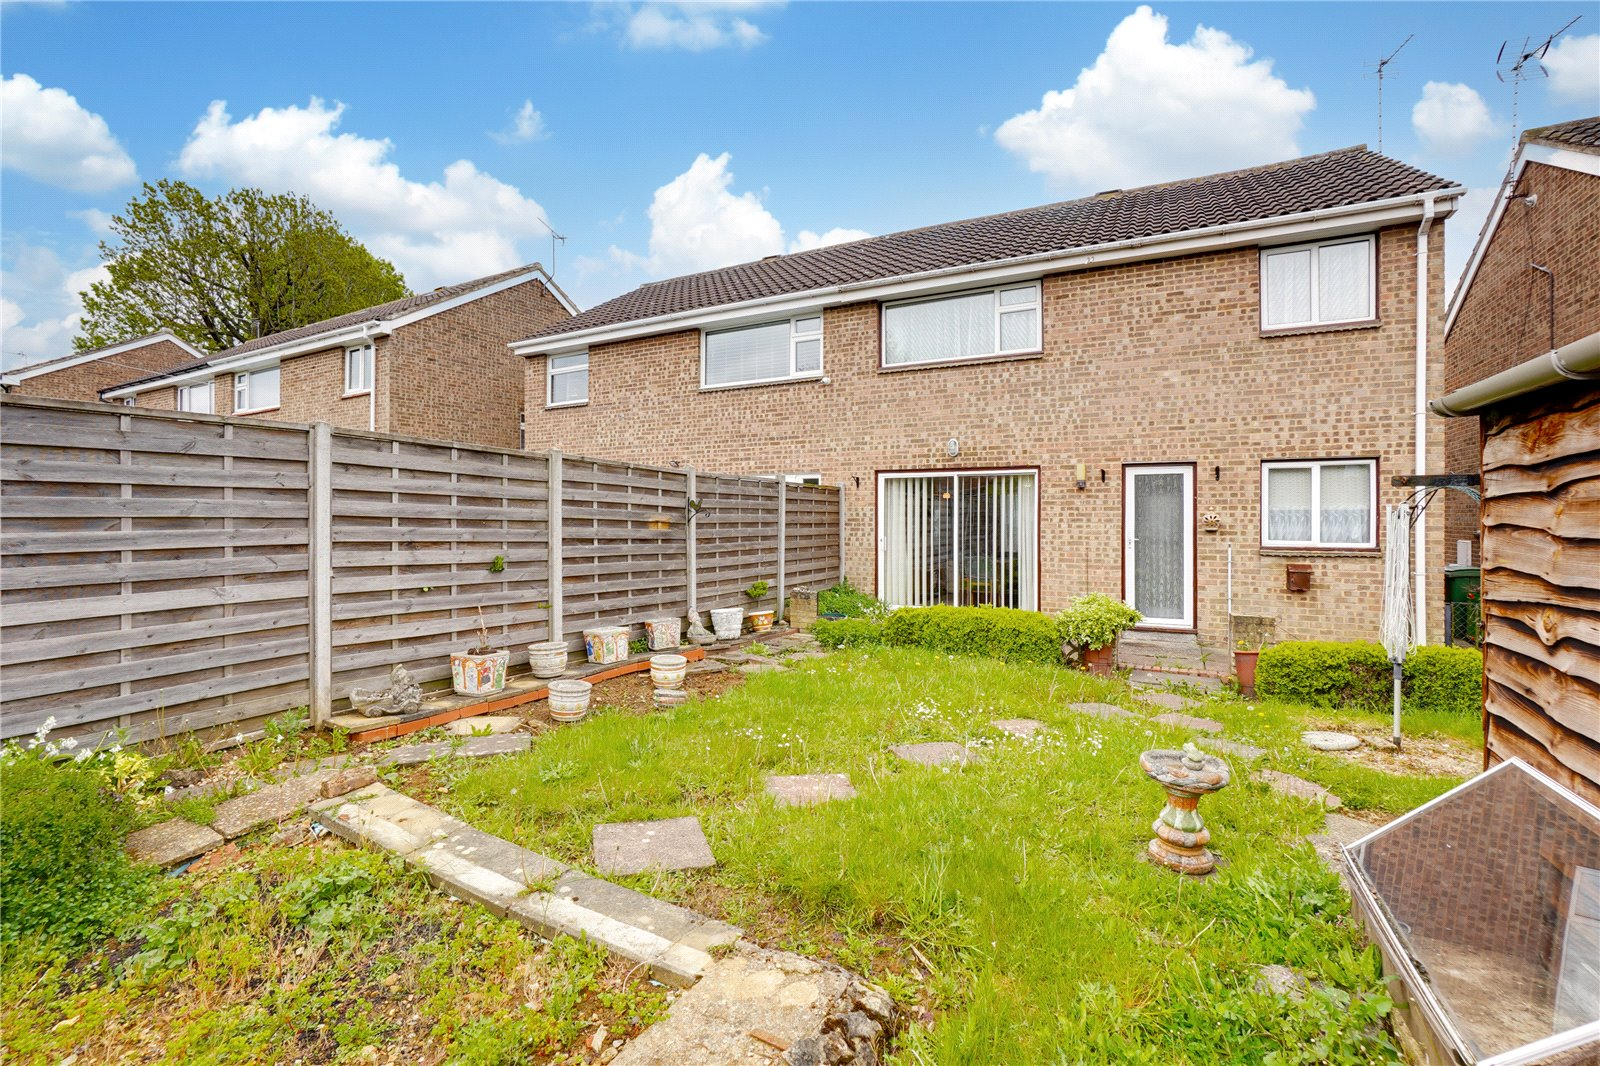 3 bed house for sale in Groombridge Square, Maidstone, ME15